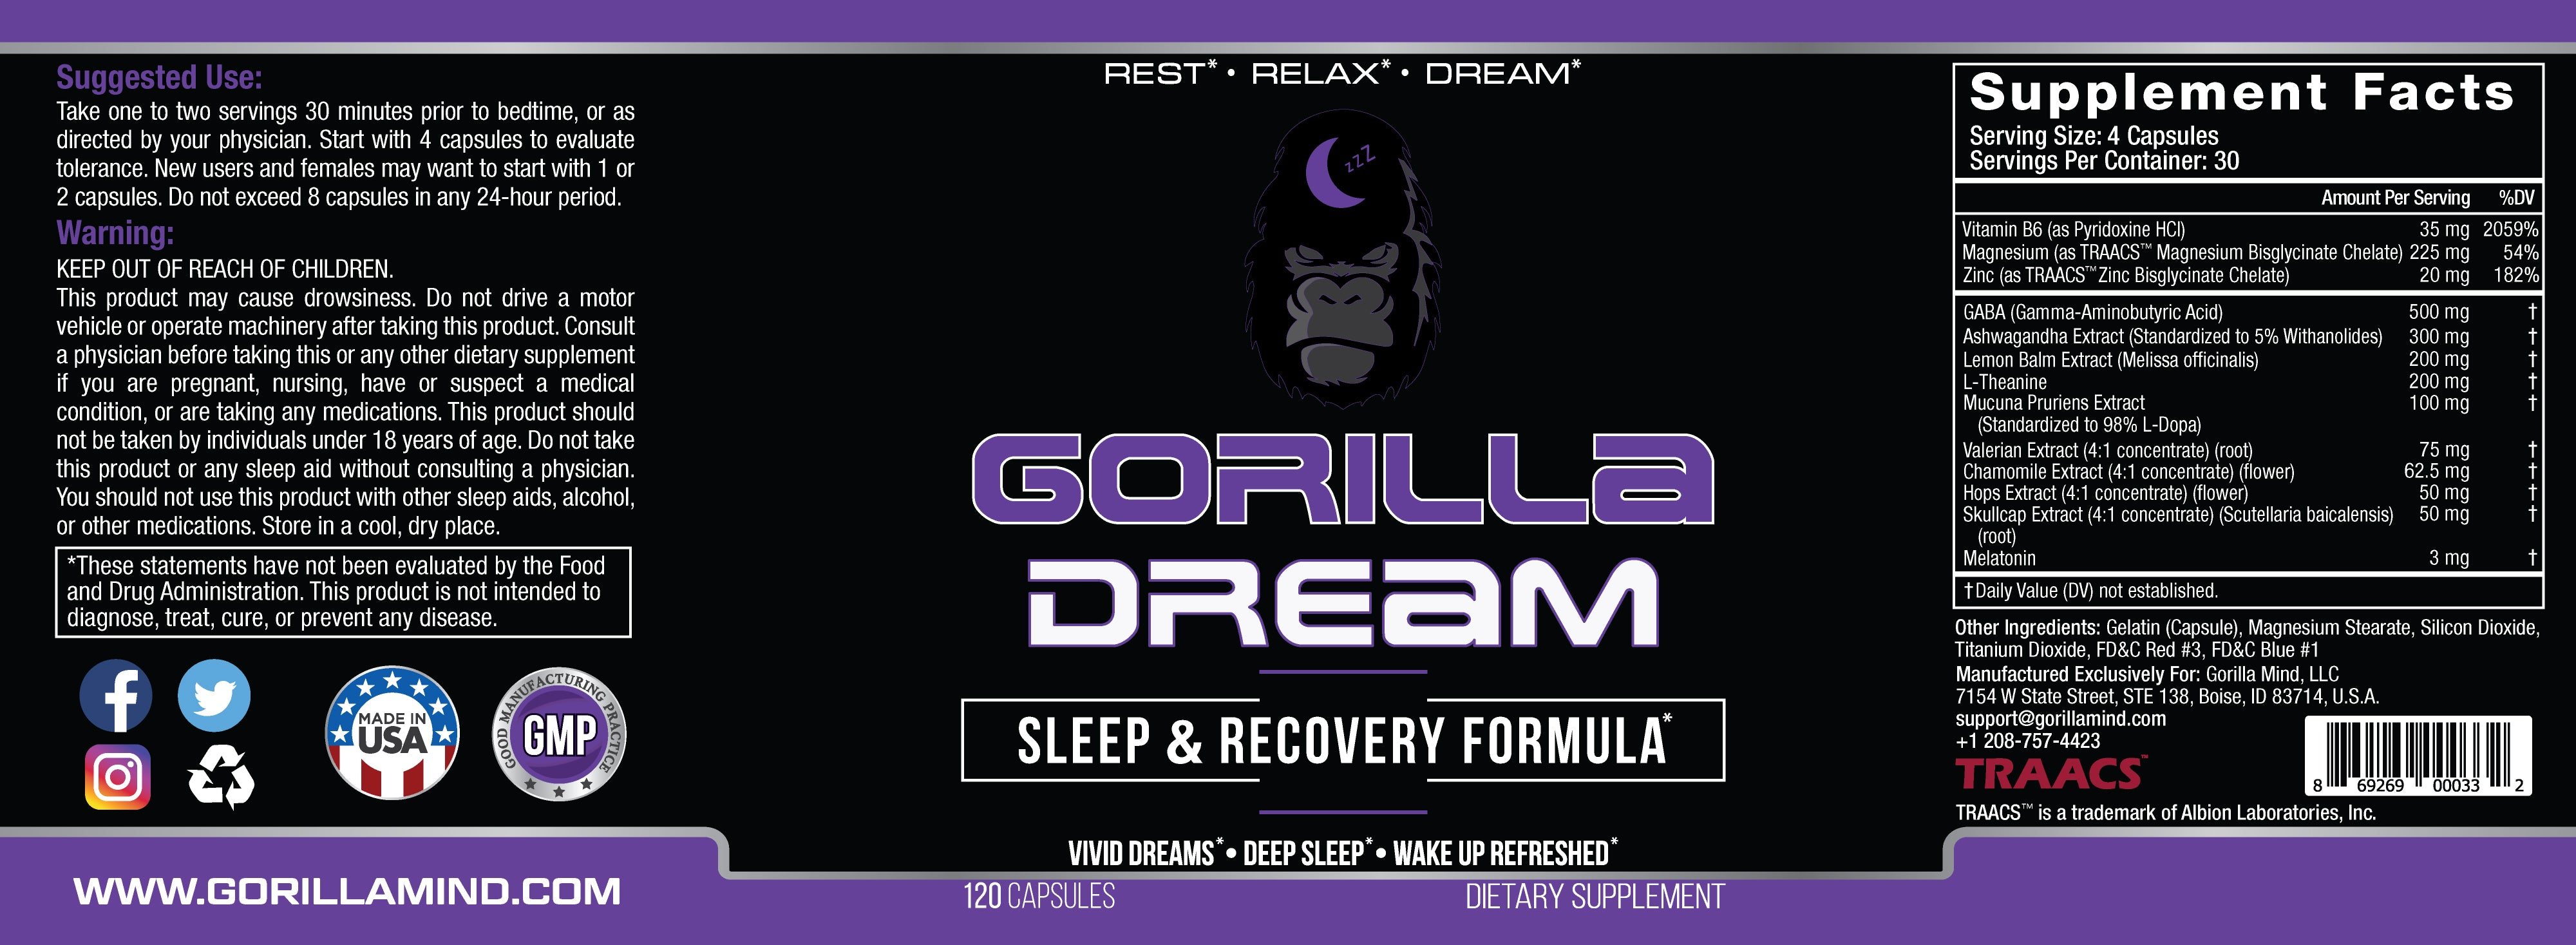 Gorilla Dream Bottle - 120 Capsules Supplement Facts